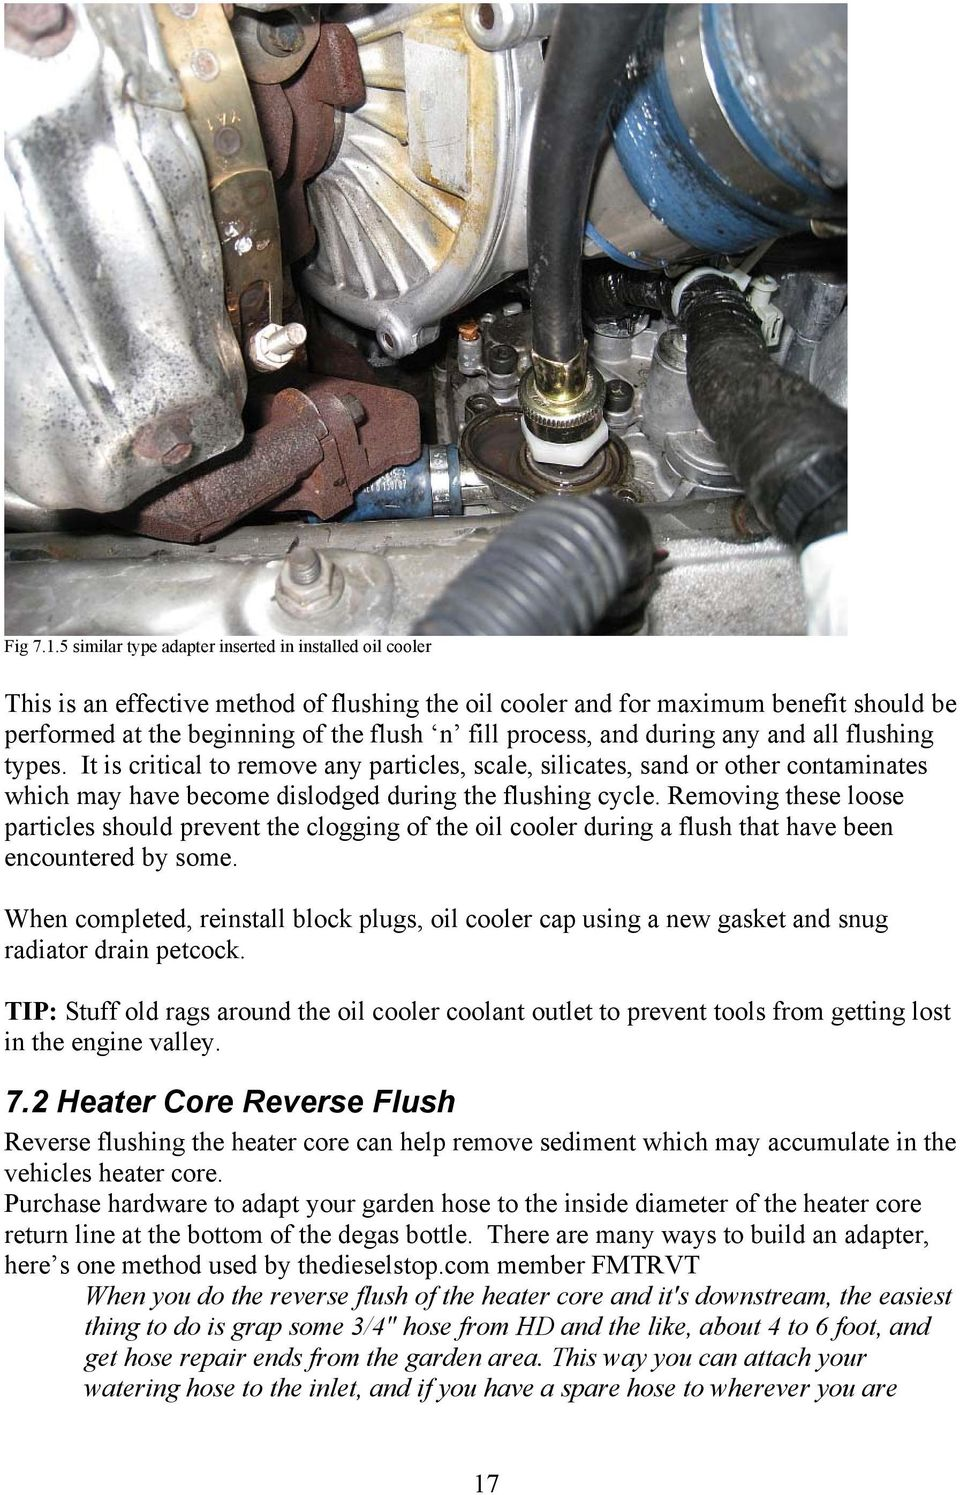 Ford Powerstroke 6 0L Turbo Diesel Cooling System Overview and Flush